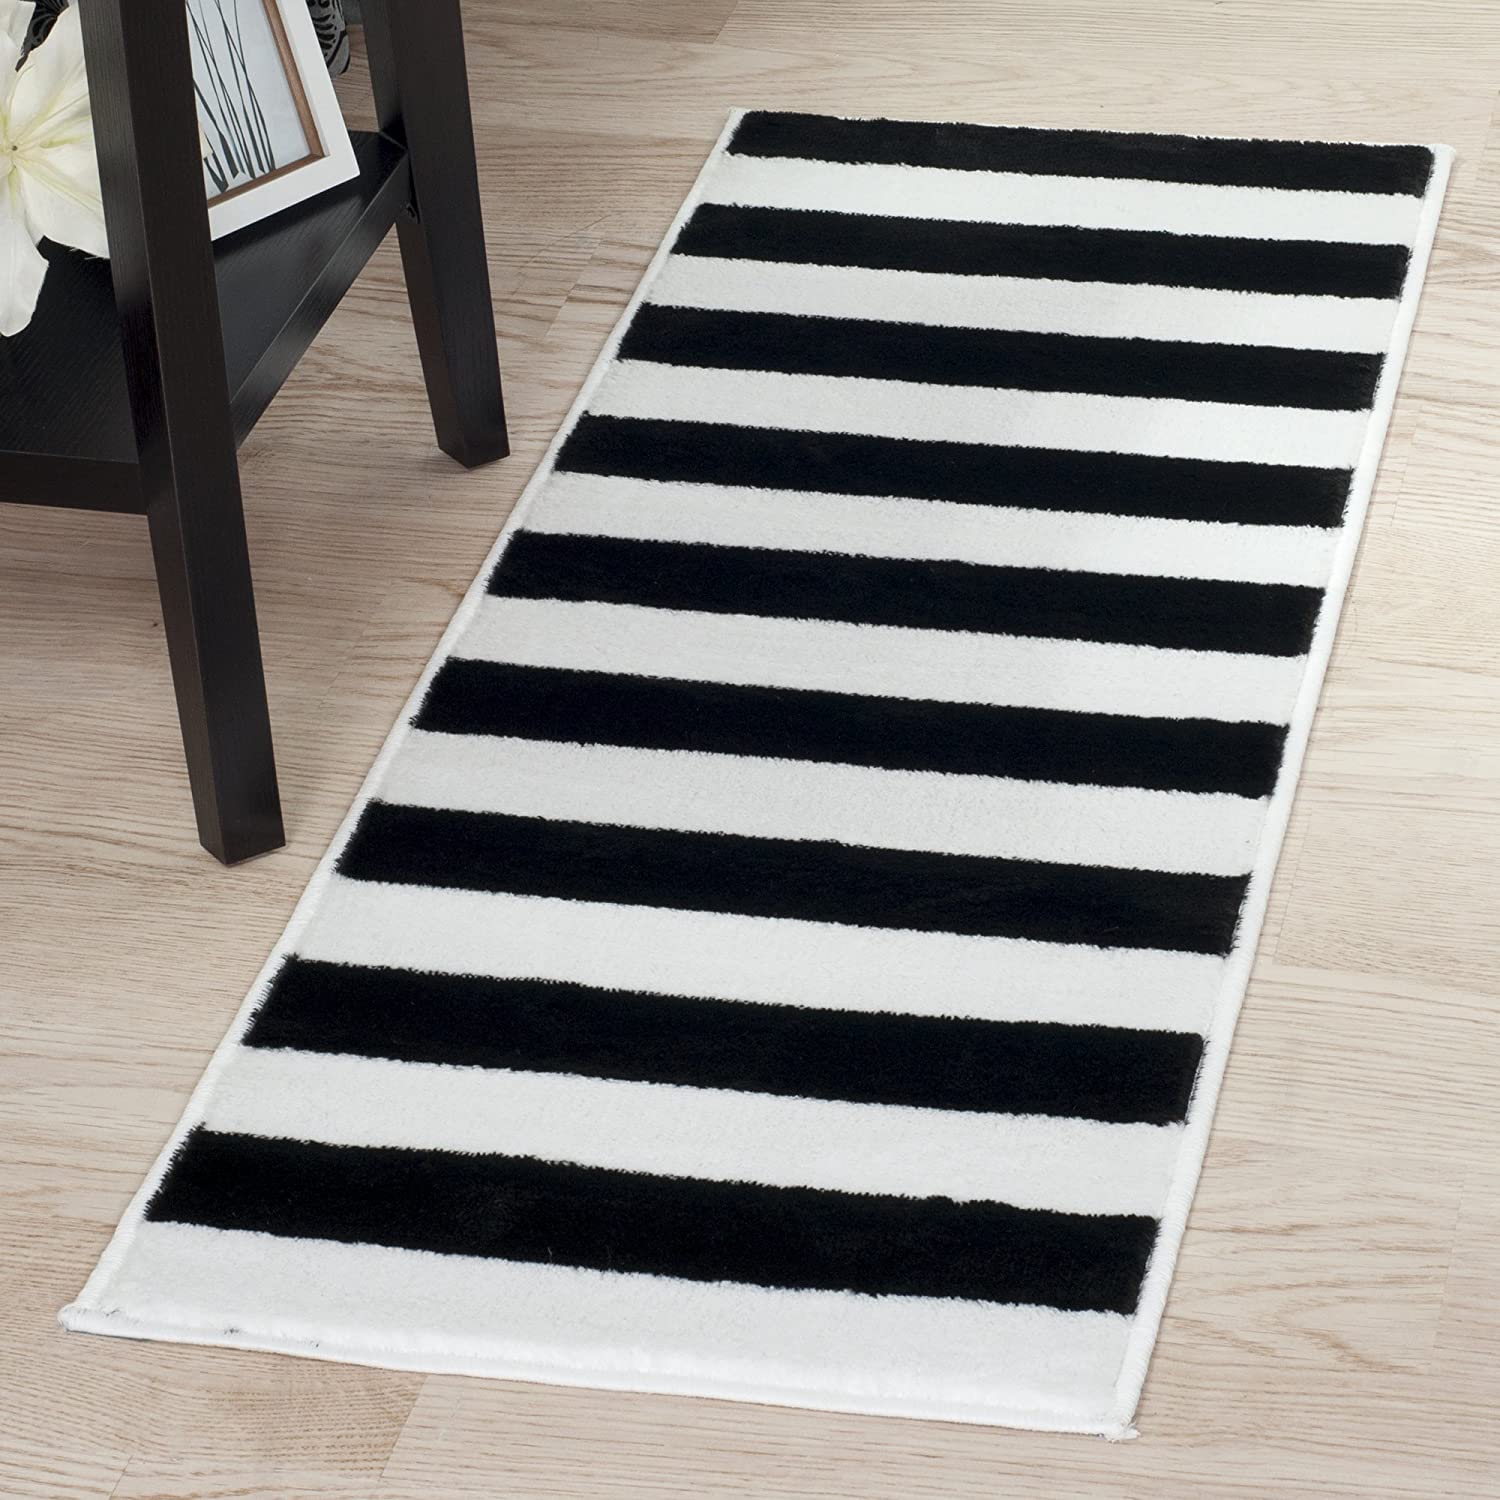 striped rugs wool black s target and info wipeoutsgrill rug ikea white runner